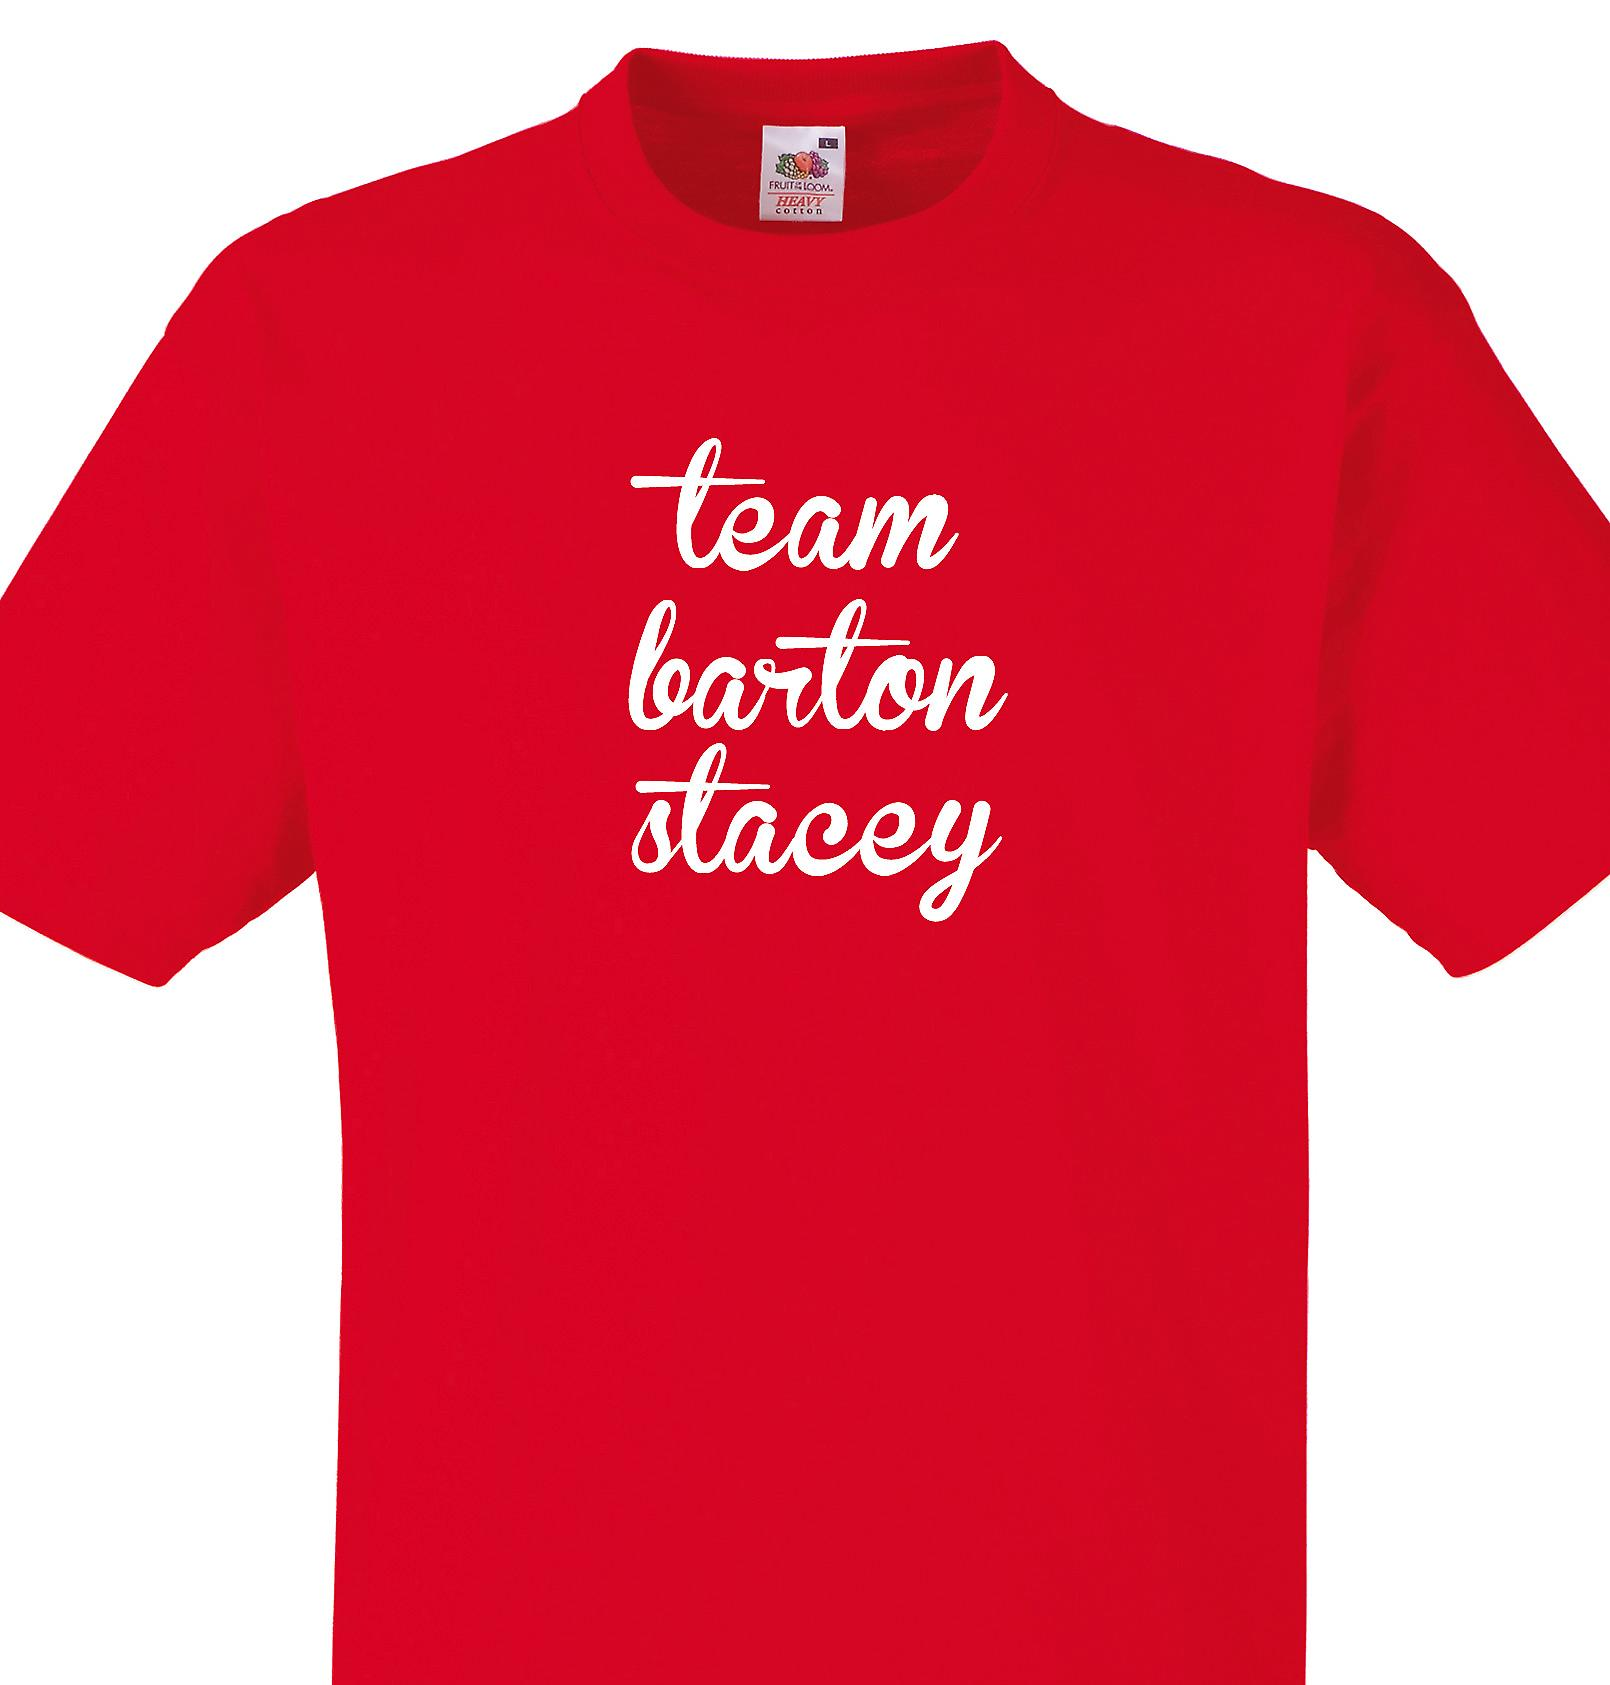 Team Barton stacey Red T shirt